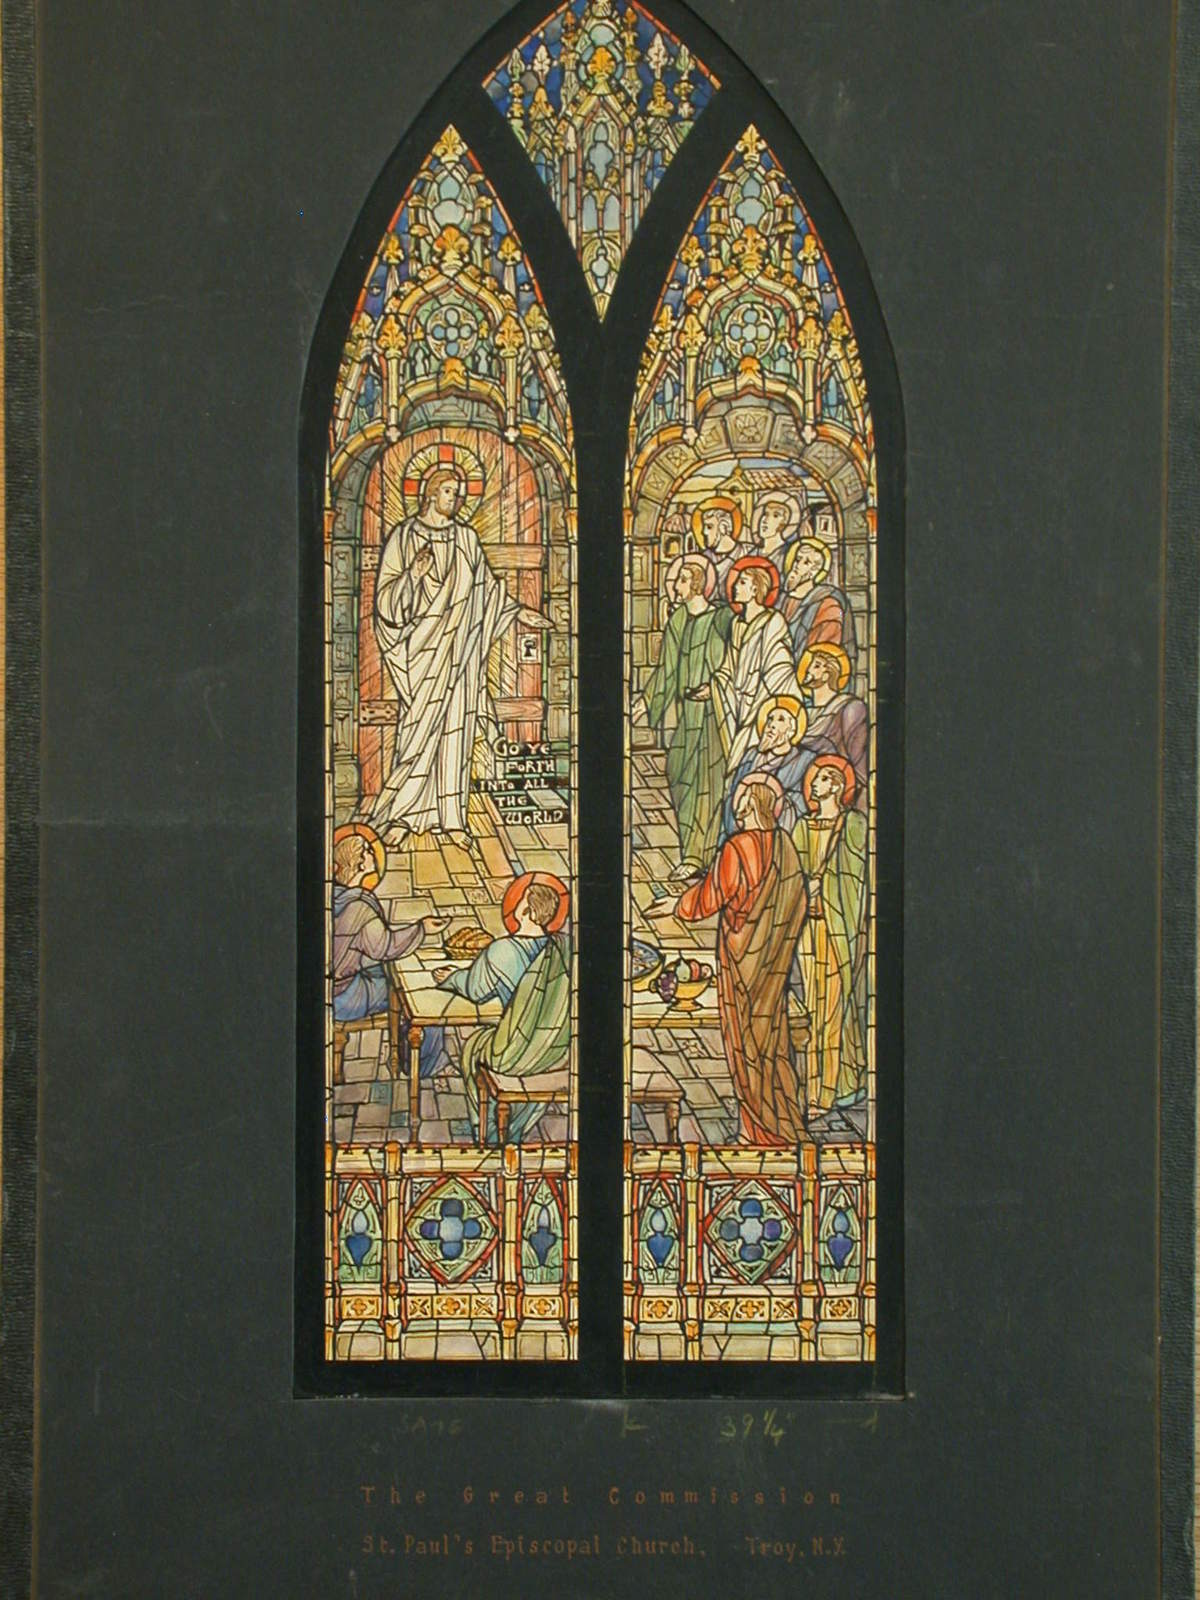 """[Design drawing for stained glass window (""""The Great Commission"""") for St. Paul's Episcopal Church in Troy, New York]"""